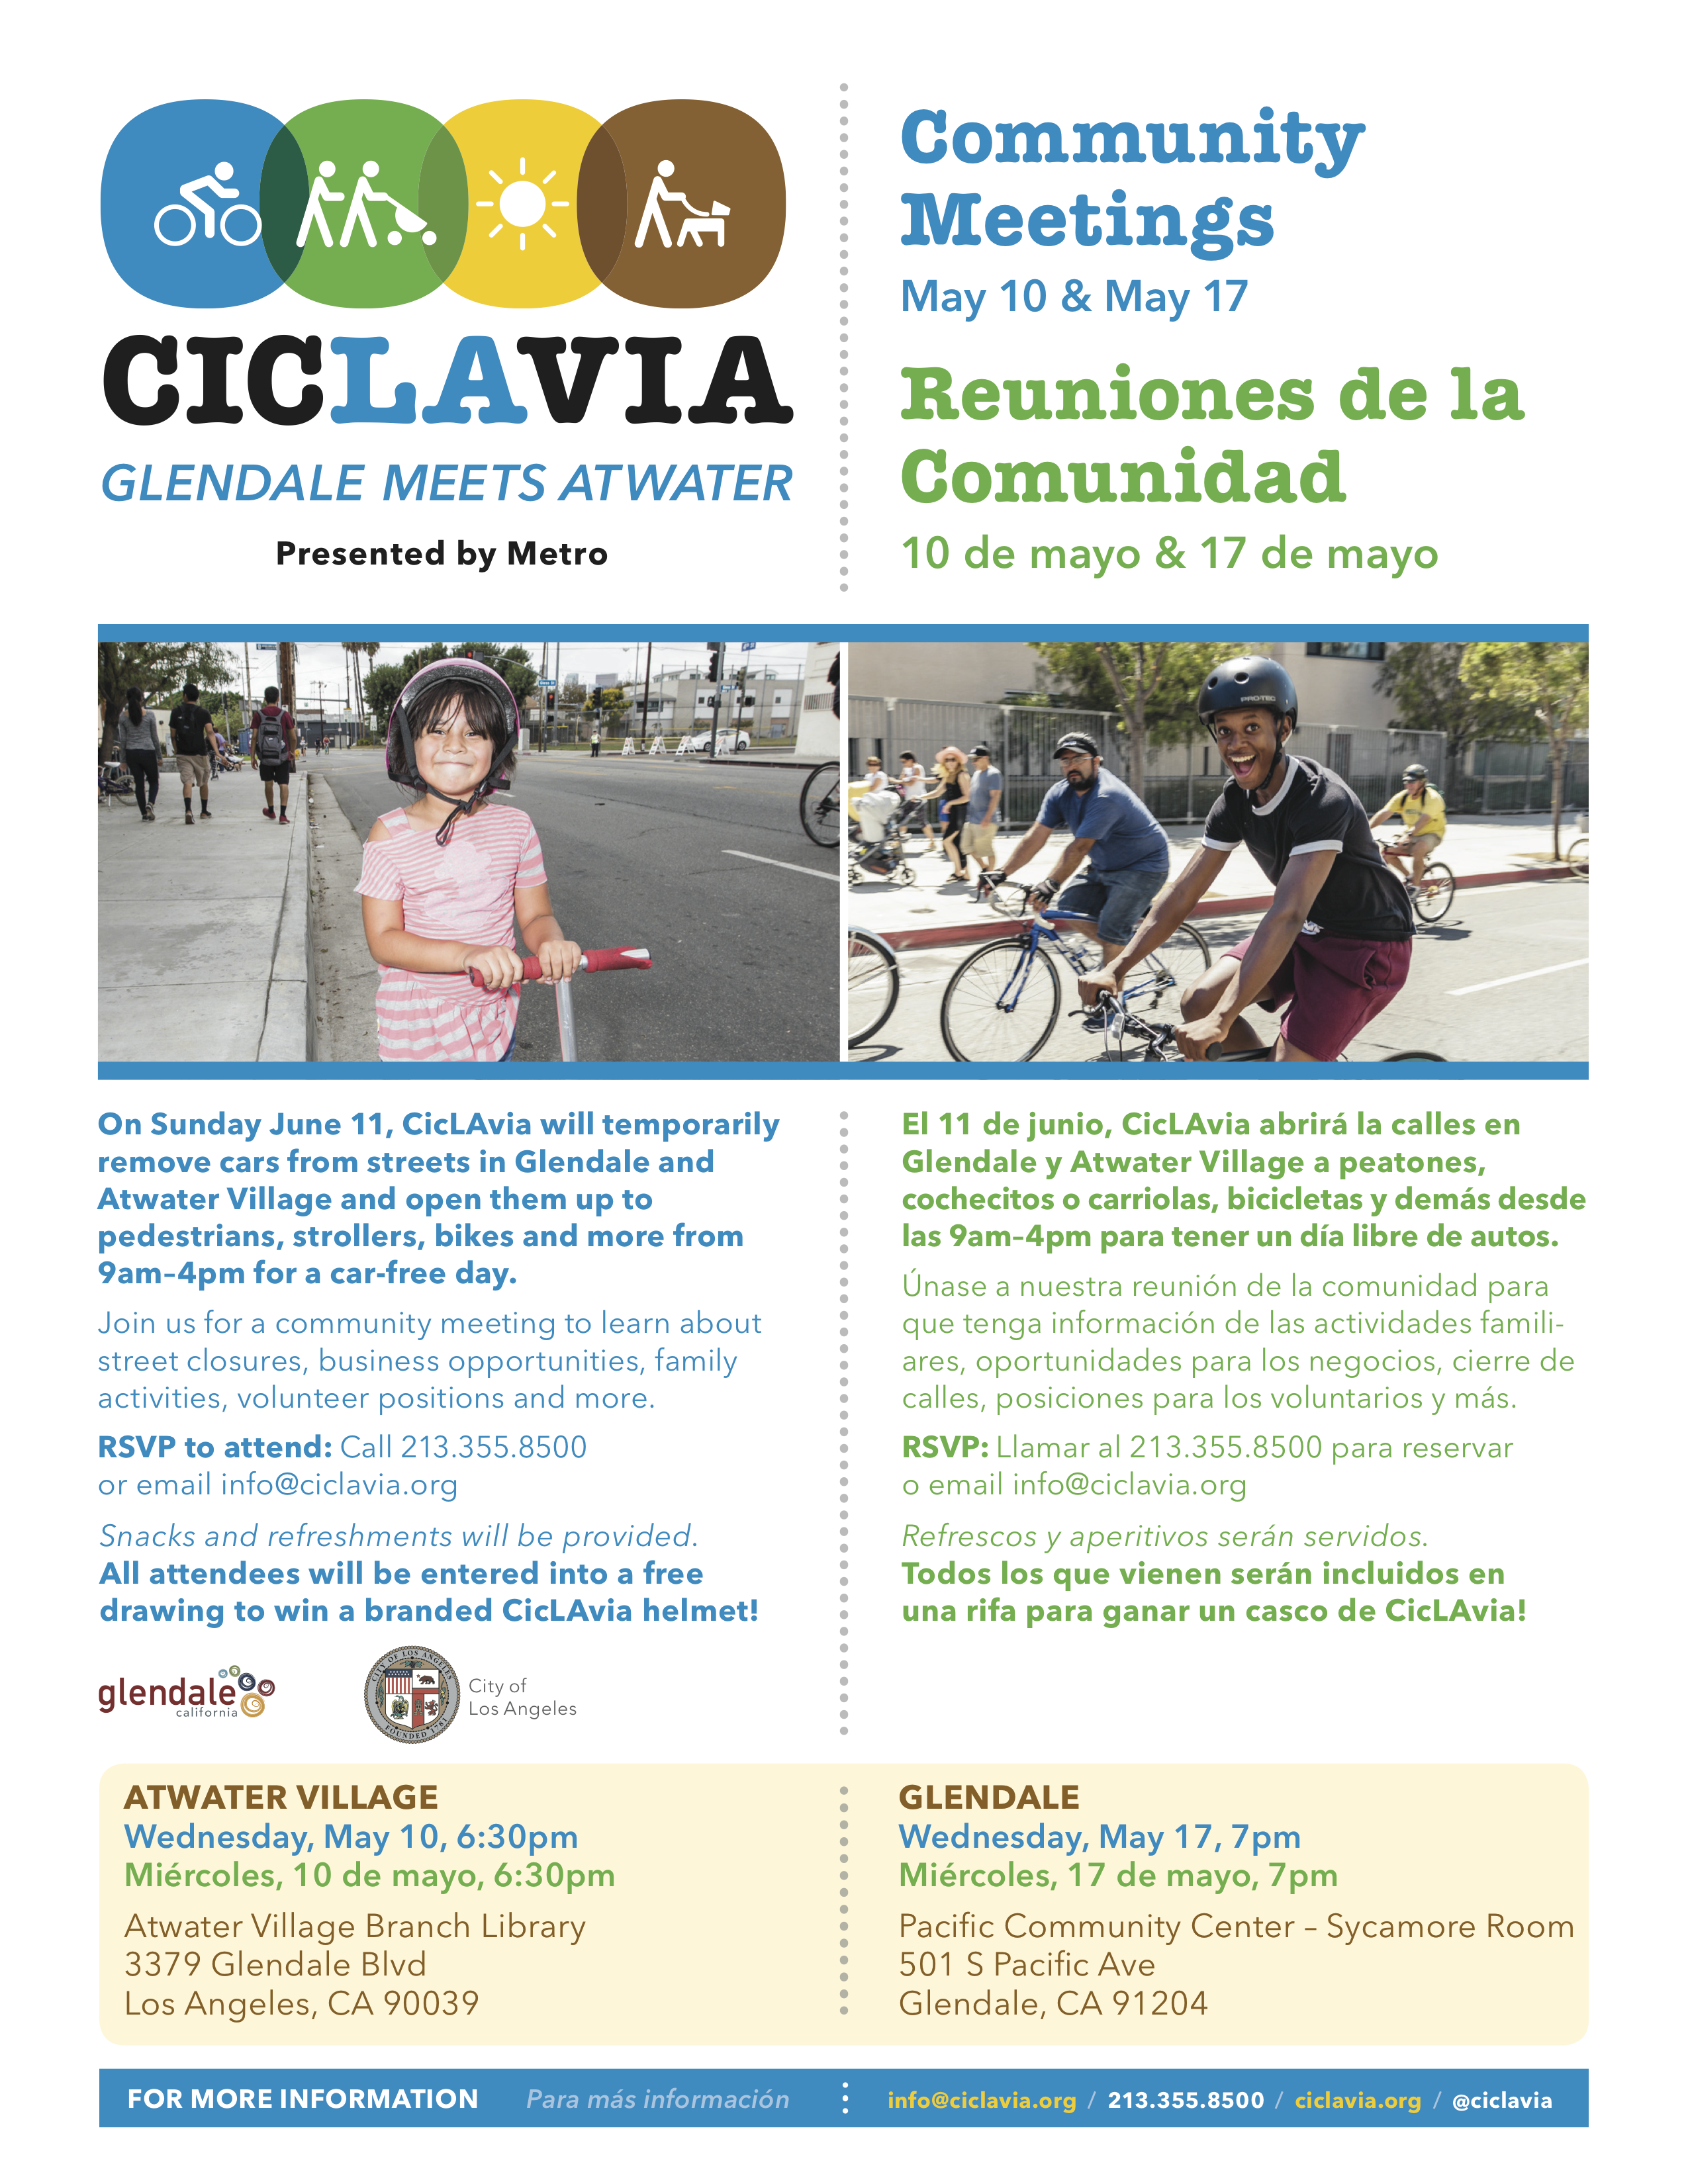 ciclavia_glendale_atwater_community_mtg_2.png